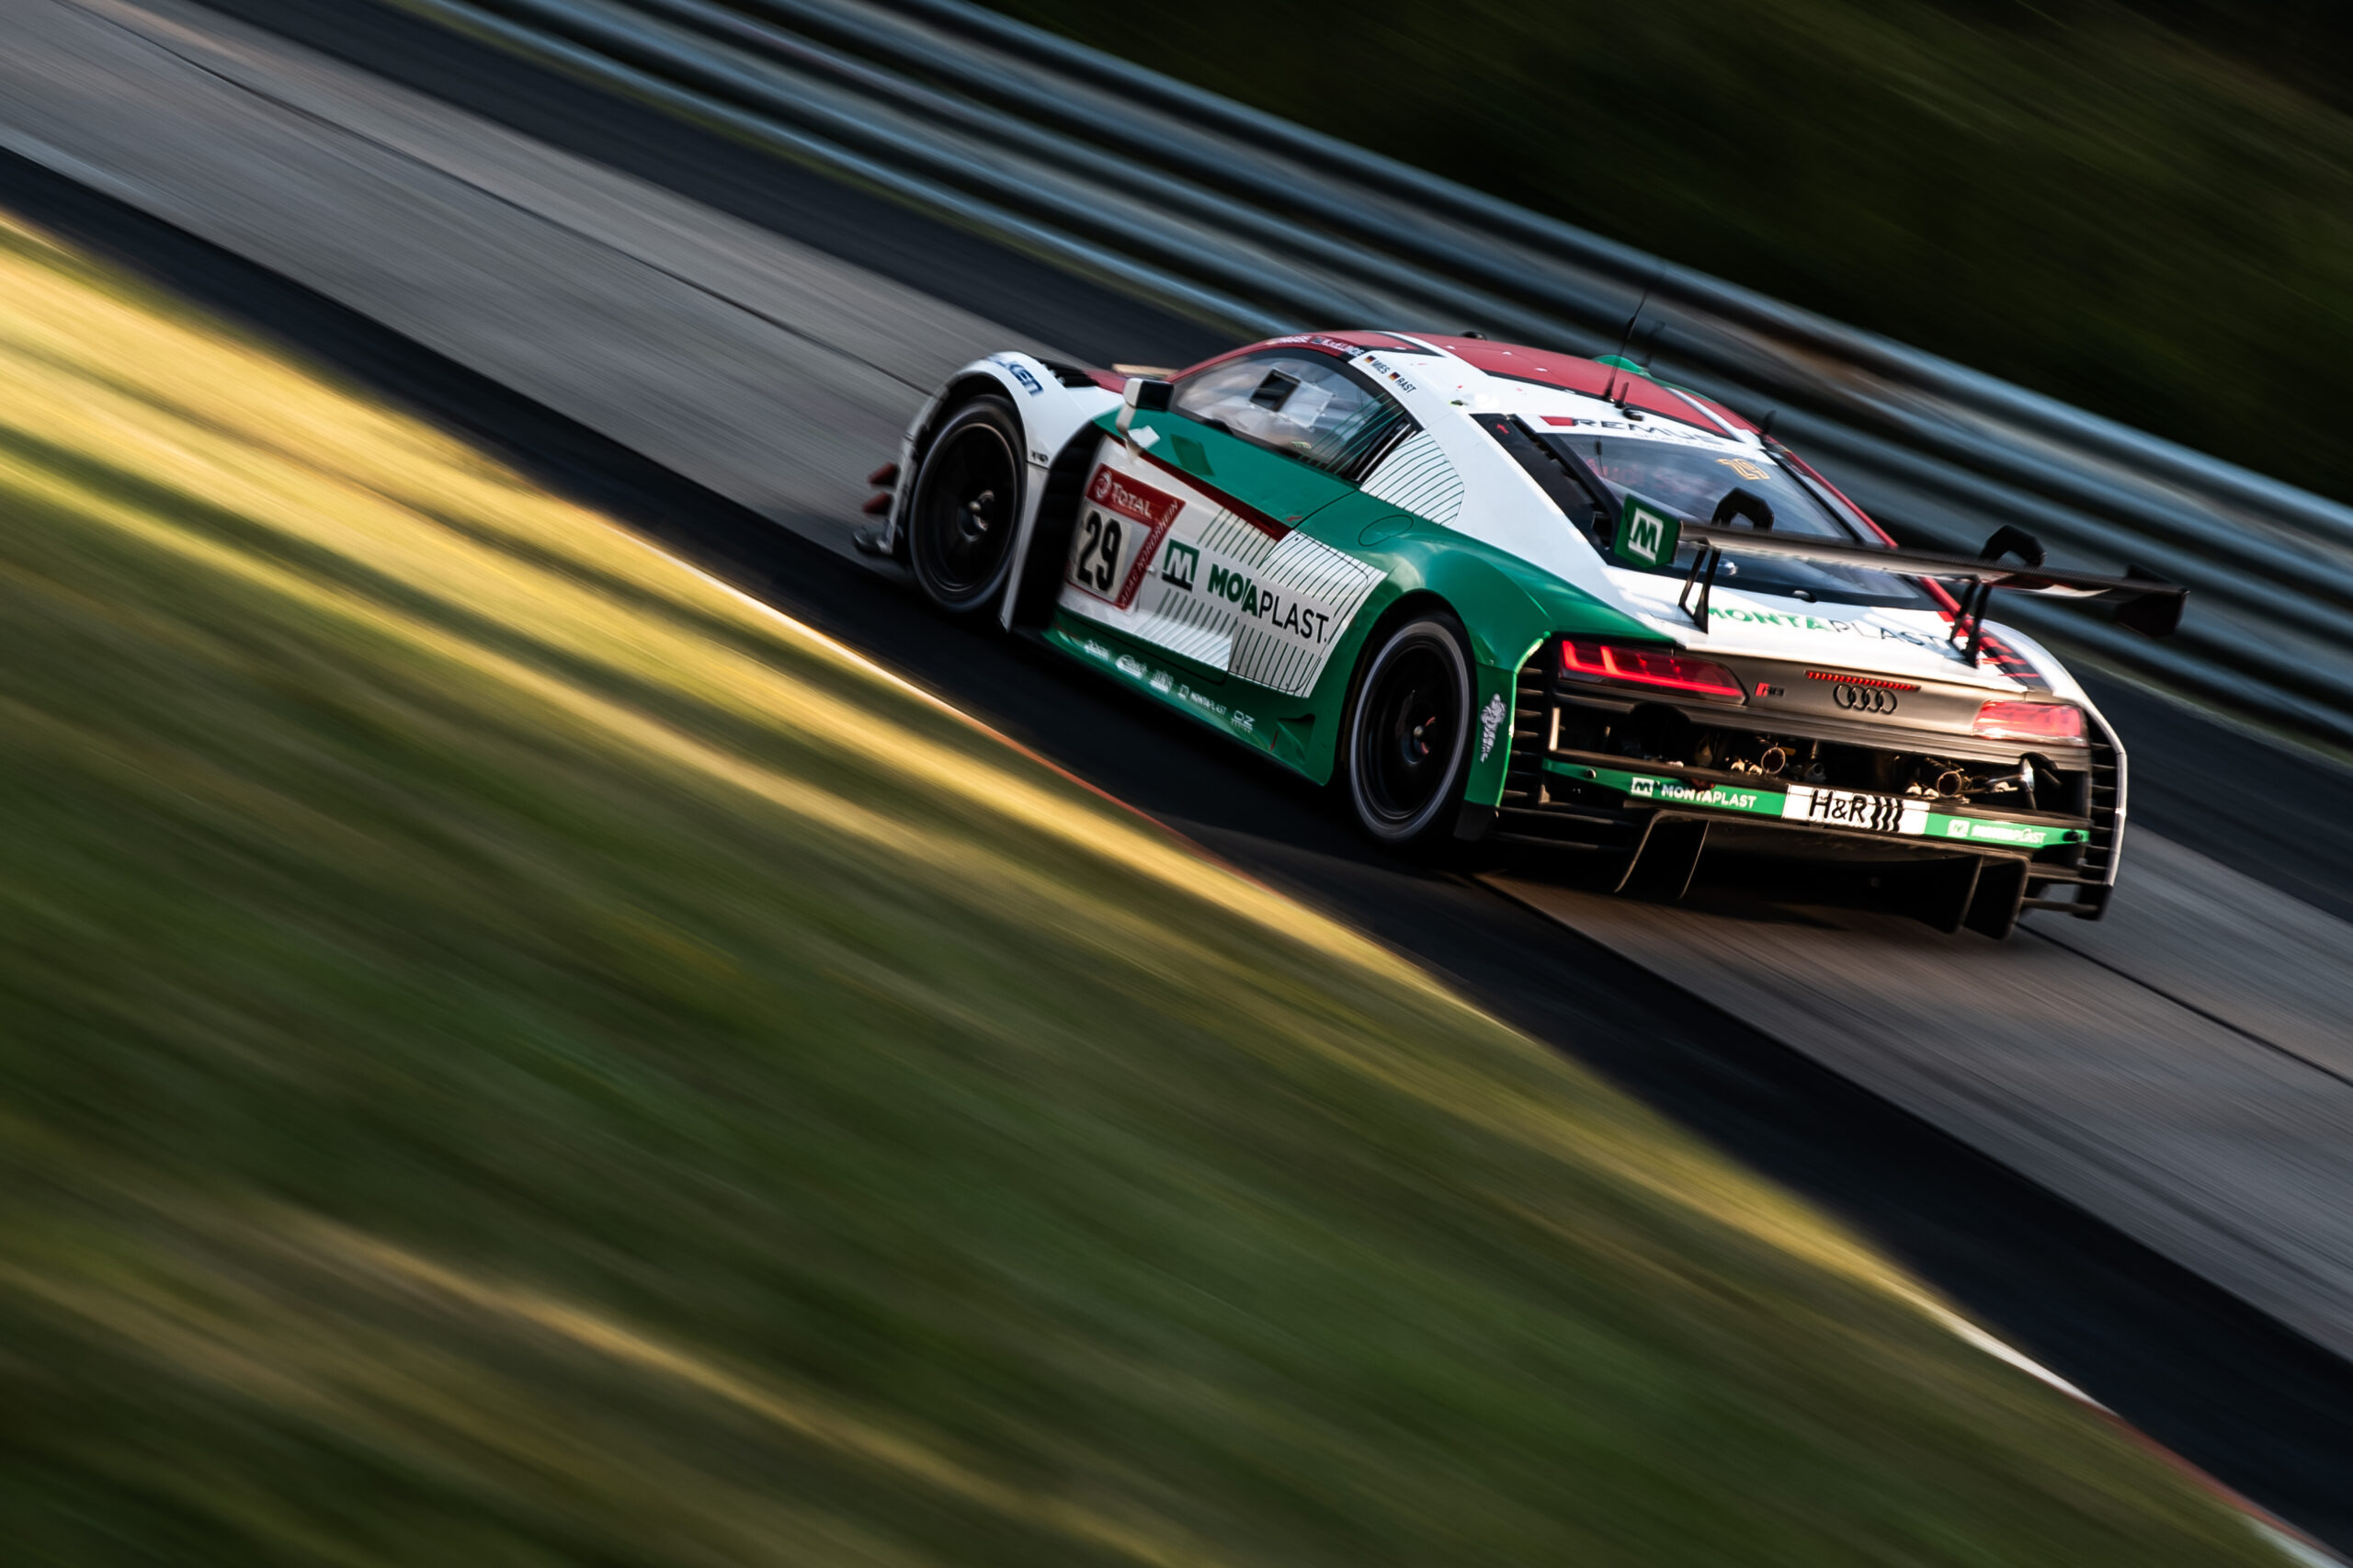 24 Hours of Nürburgring - Photo by Silas Stein